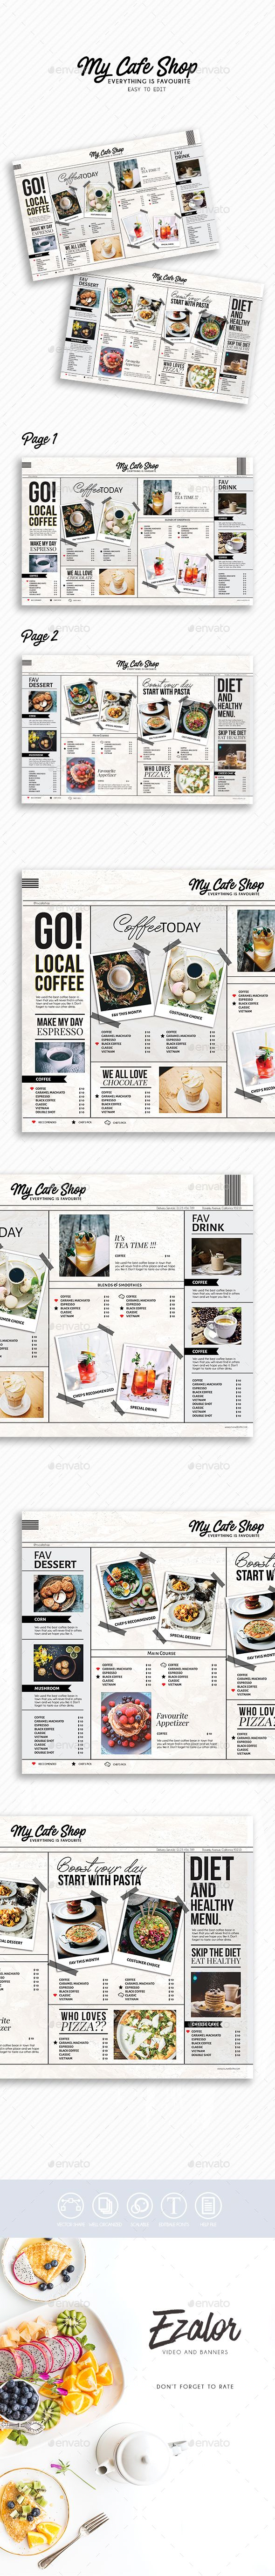 Best Restaurant Menu Template  Design Images On